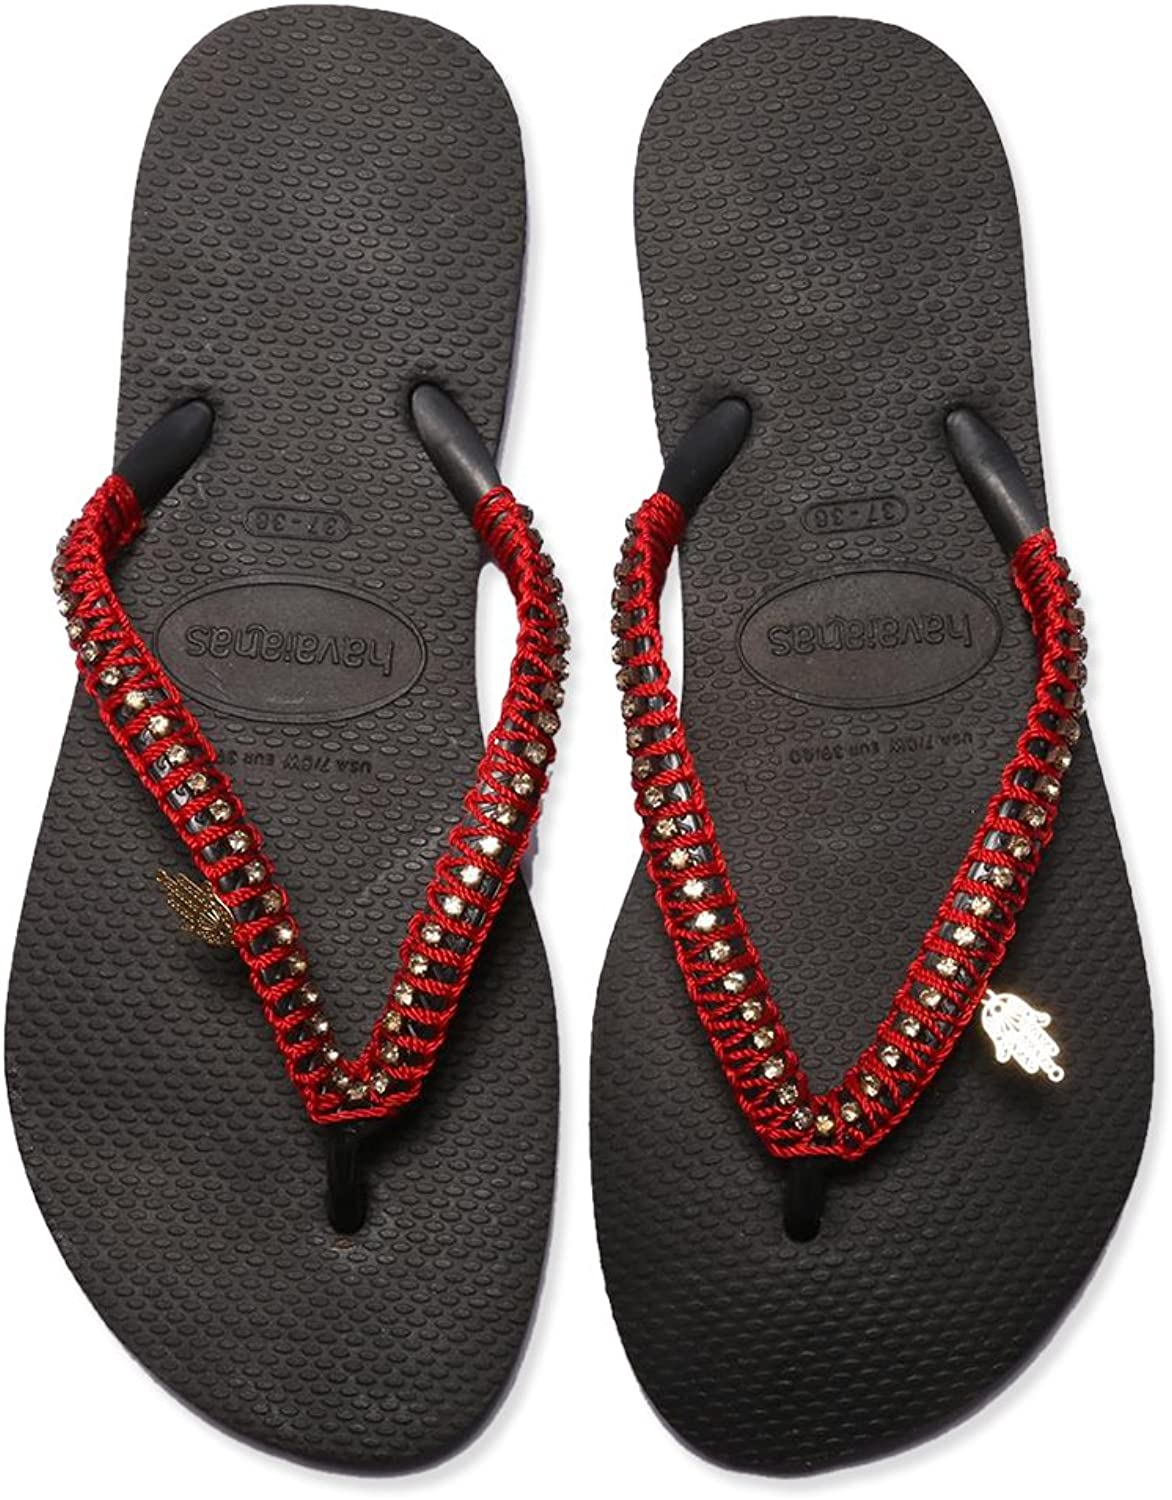 Havaians Women Black and red Hand Made Flip Flop Braded Beach Sandals